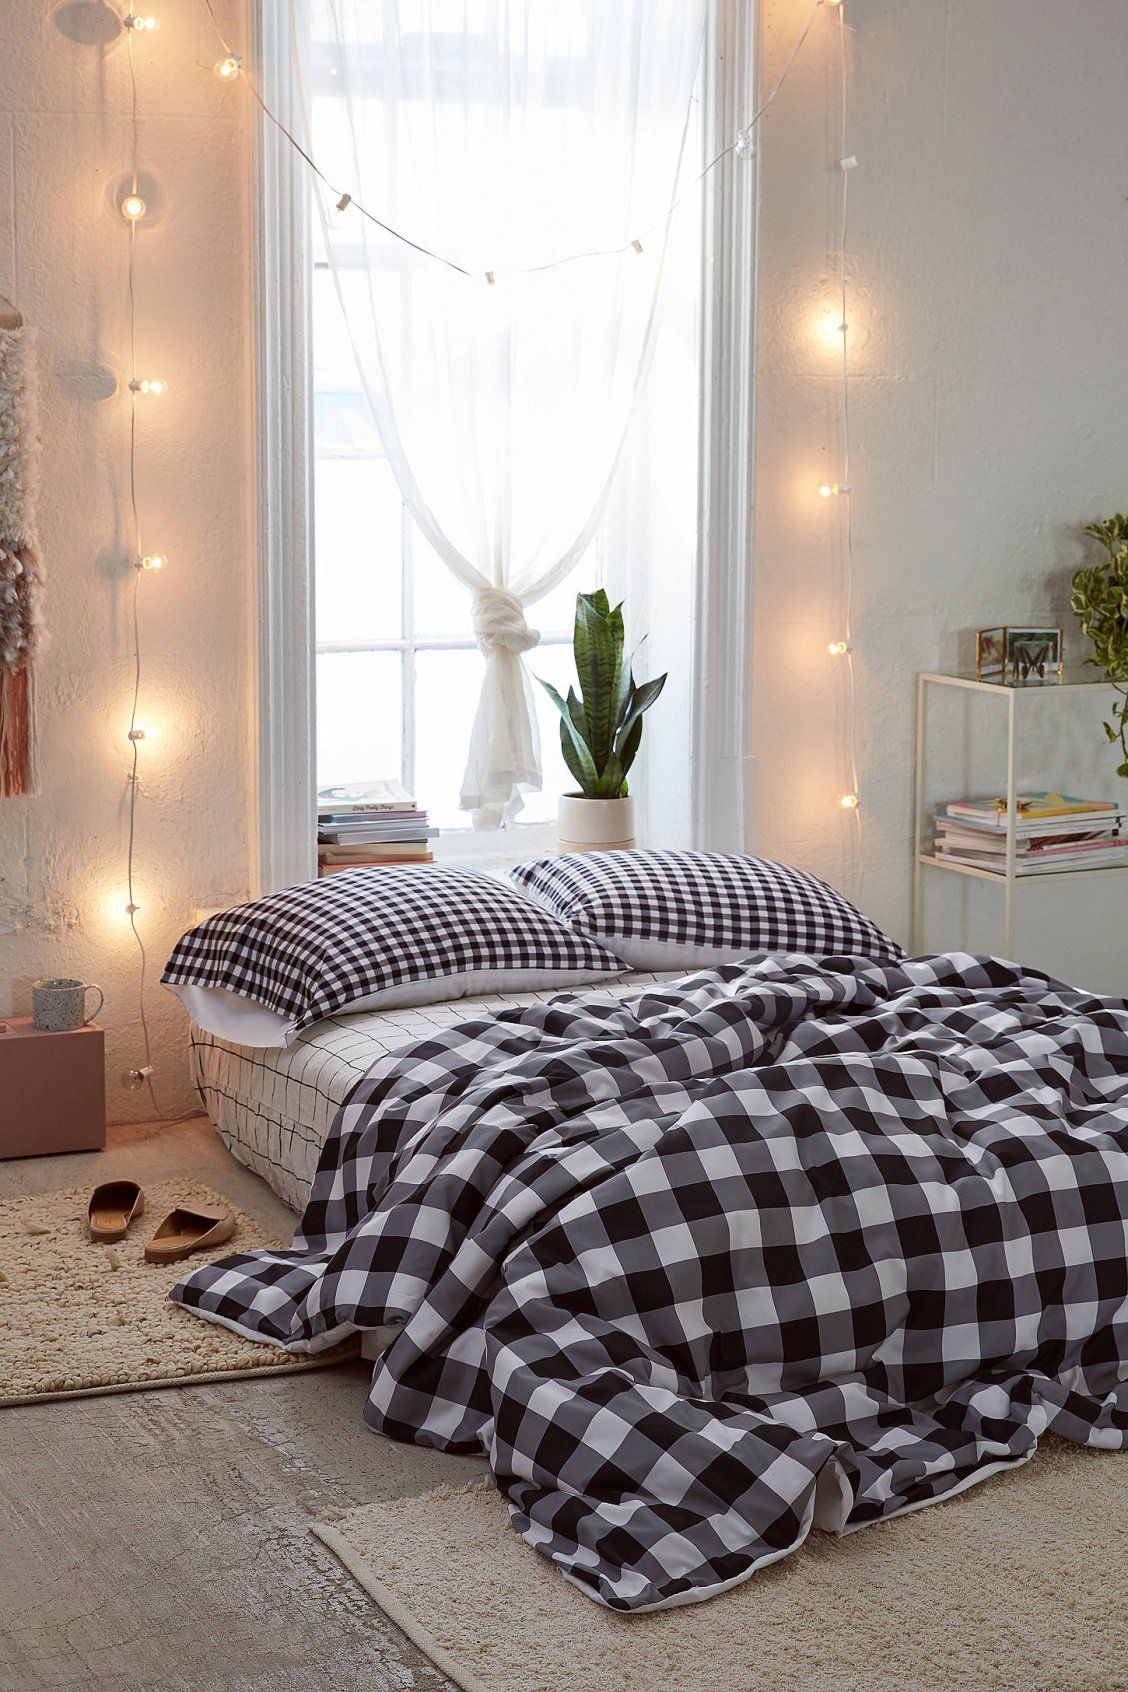 Caroline okun for deny ebony gingham duvet cover gingham urban